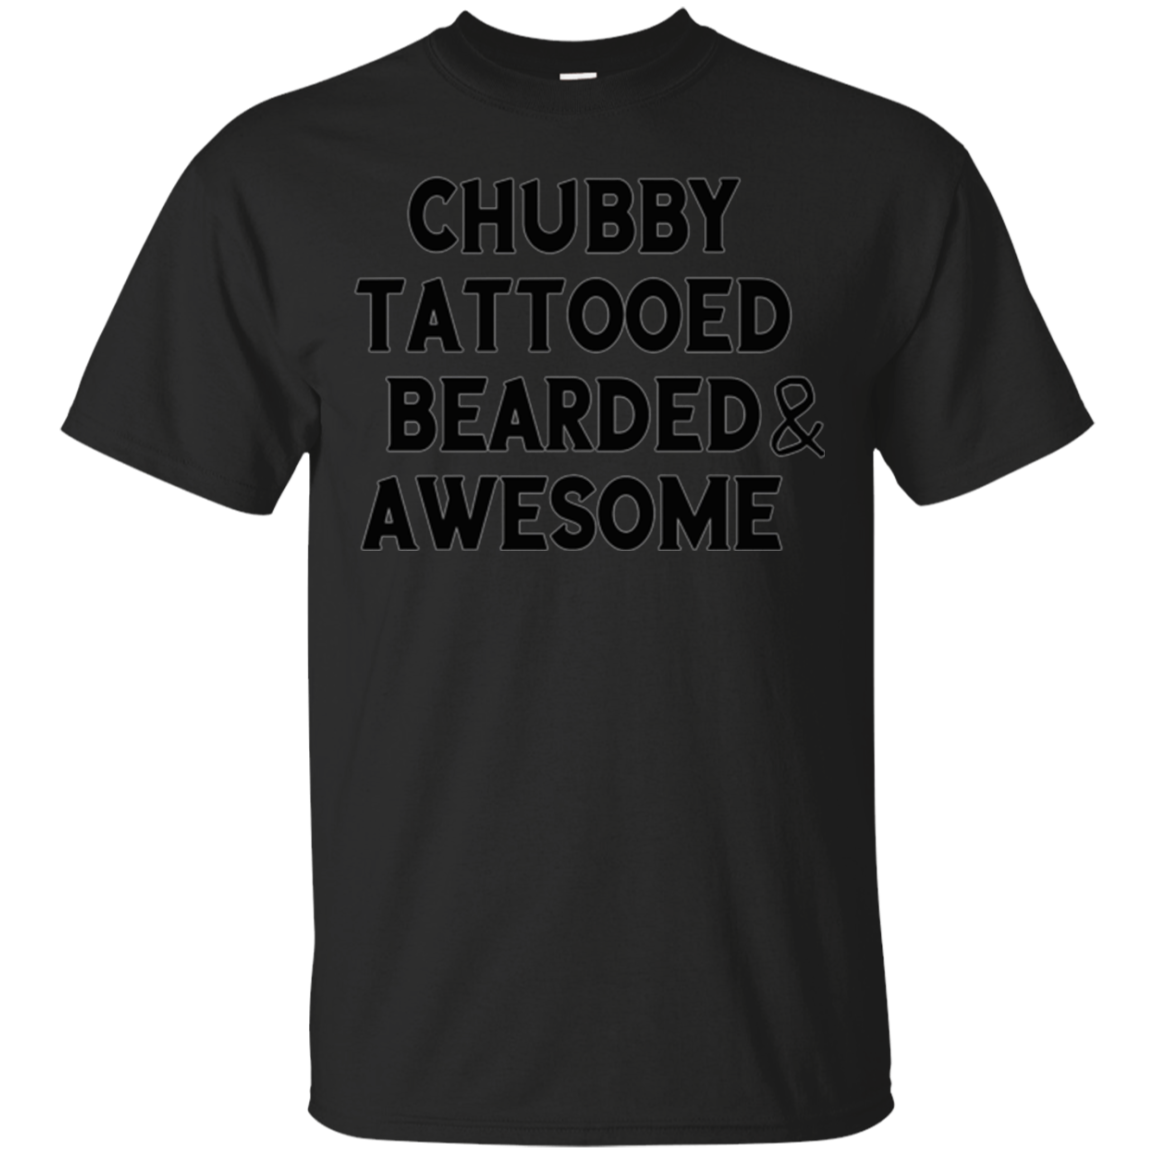 Chubby Tattooed Bearded & Awesome T-Shirt gift for men